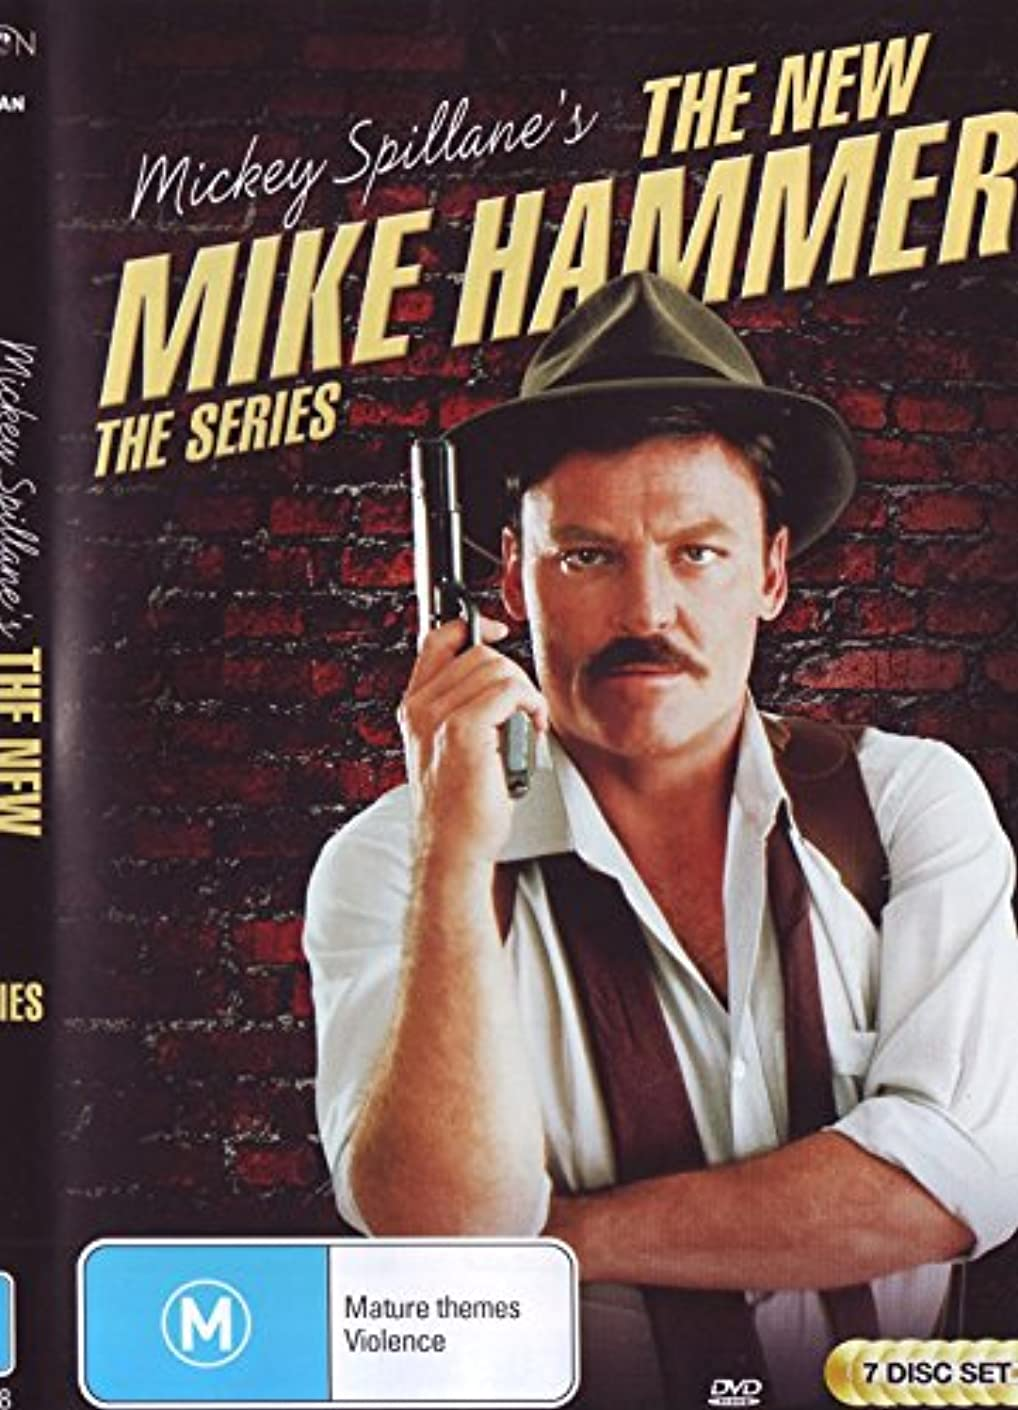 Mickey Spillane's - The New Mike Hammer the Series 1986